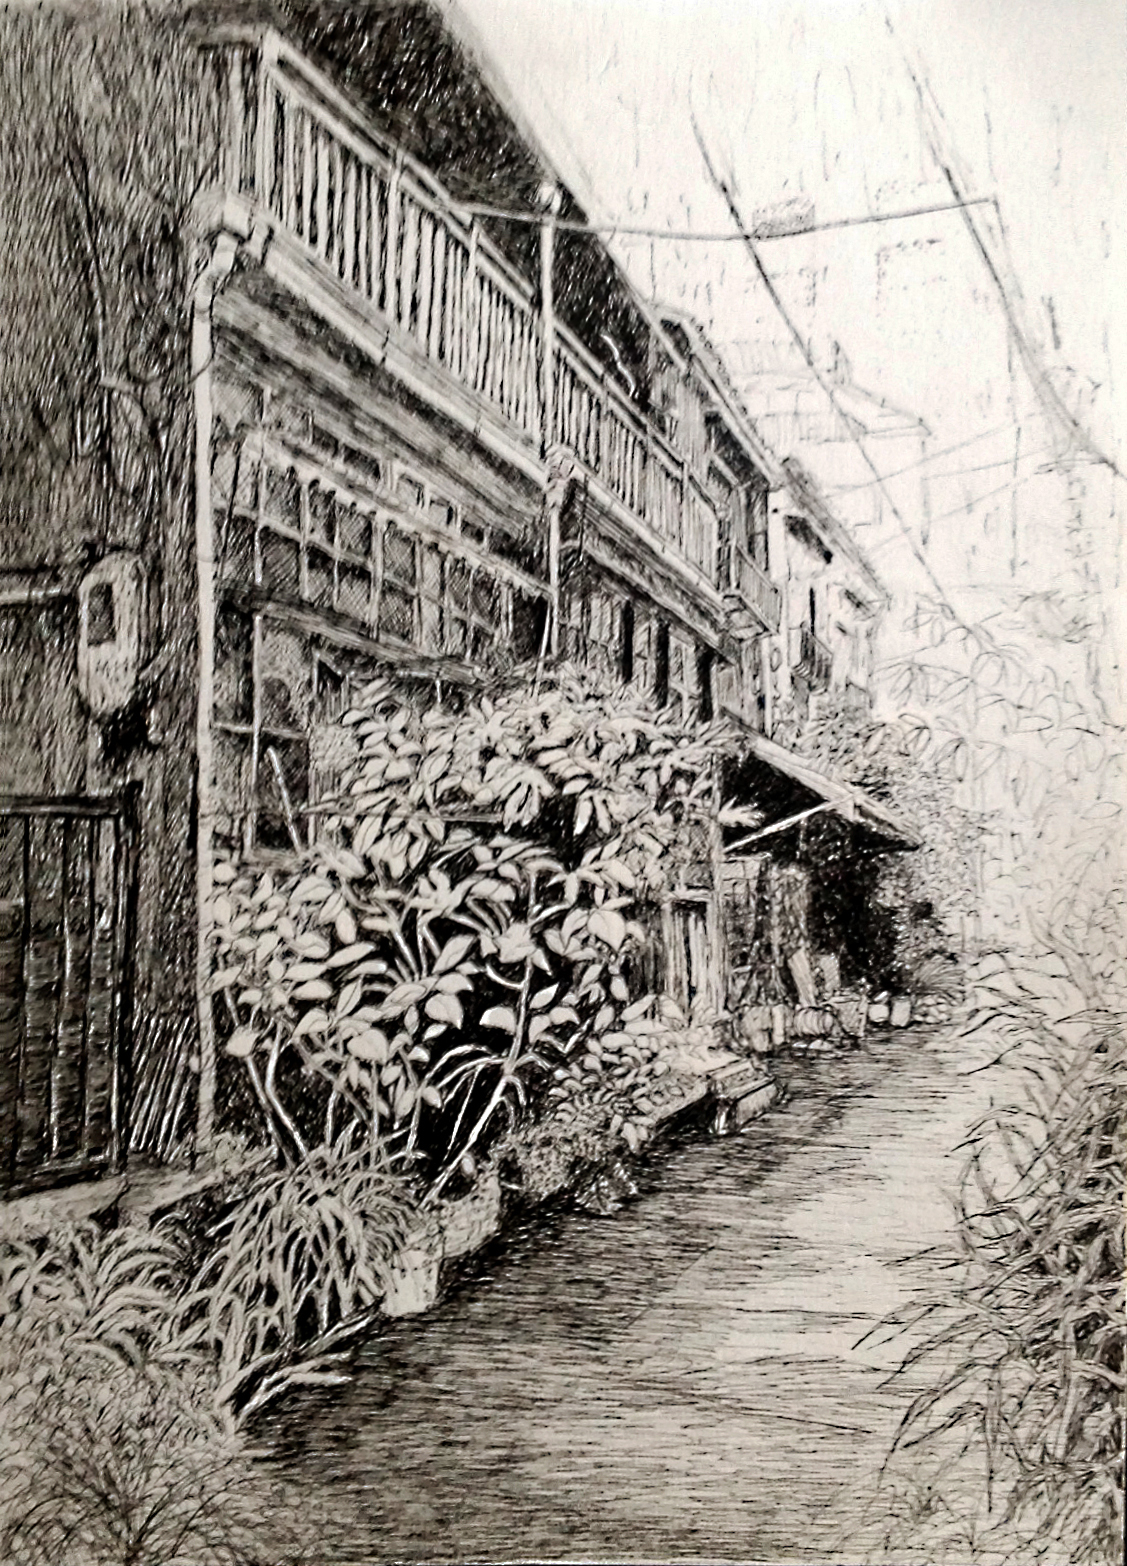 pen and ink drawing of one of the small Tokyo alleyways. The drawing concentrates on the left side, dilapidated buildings and the plants that enliven the narrow space.